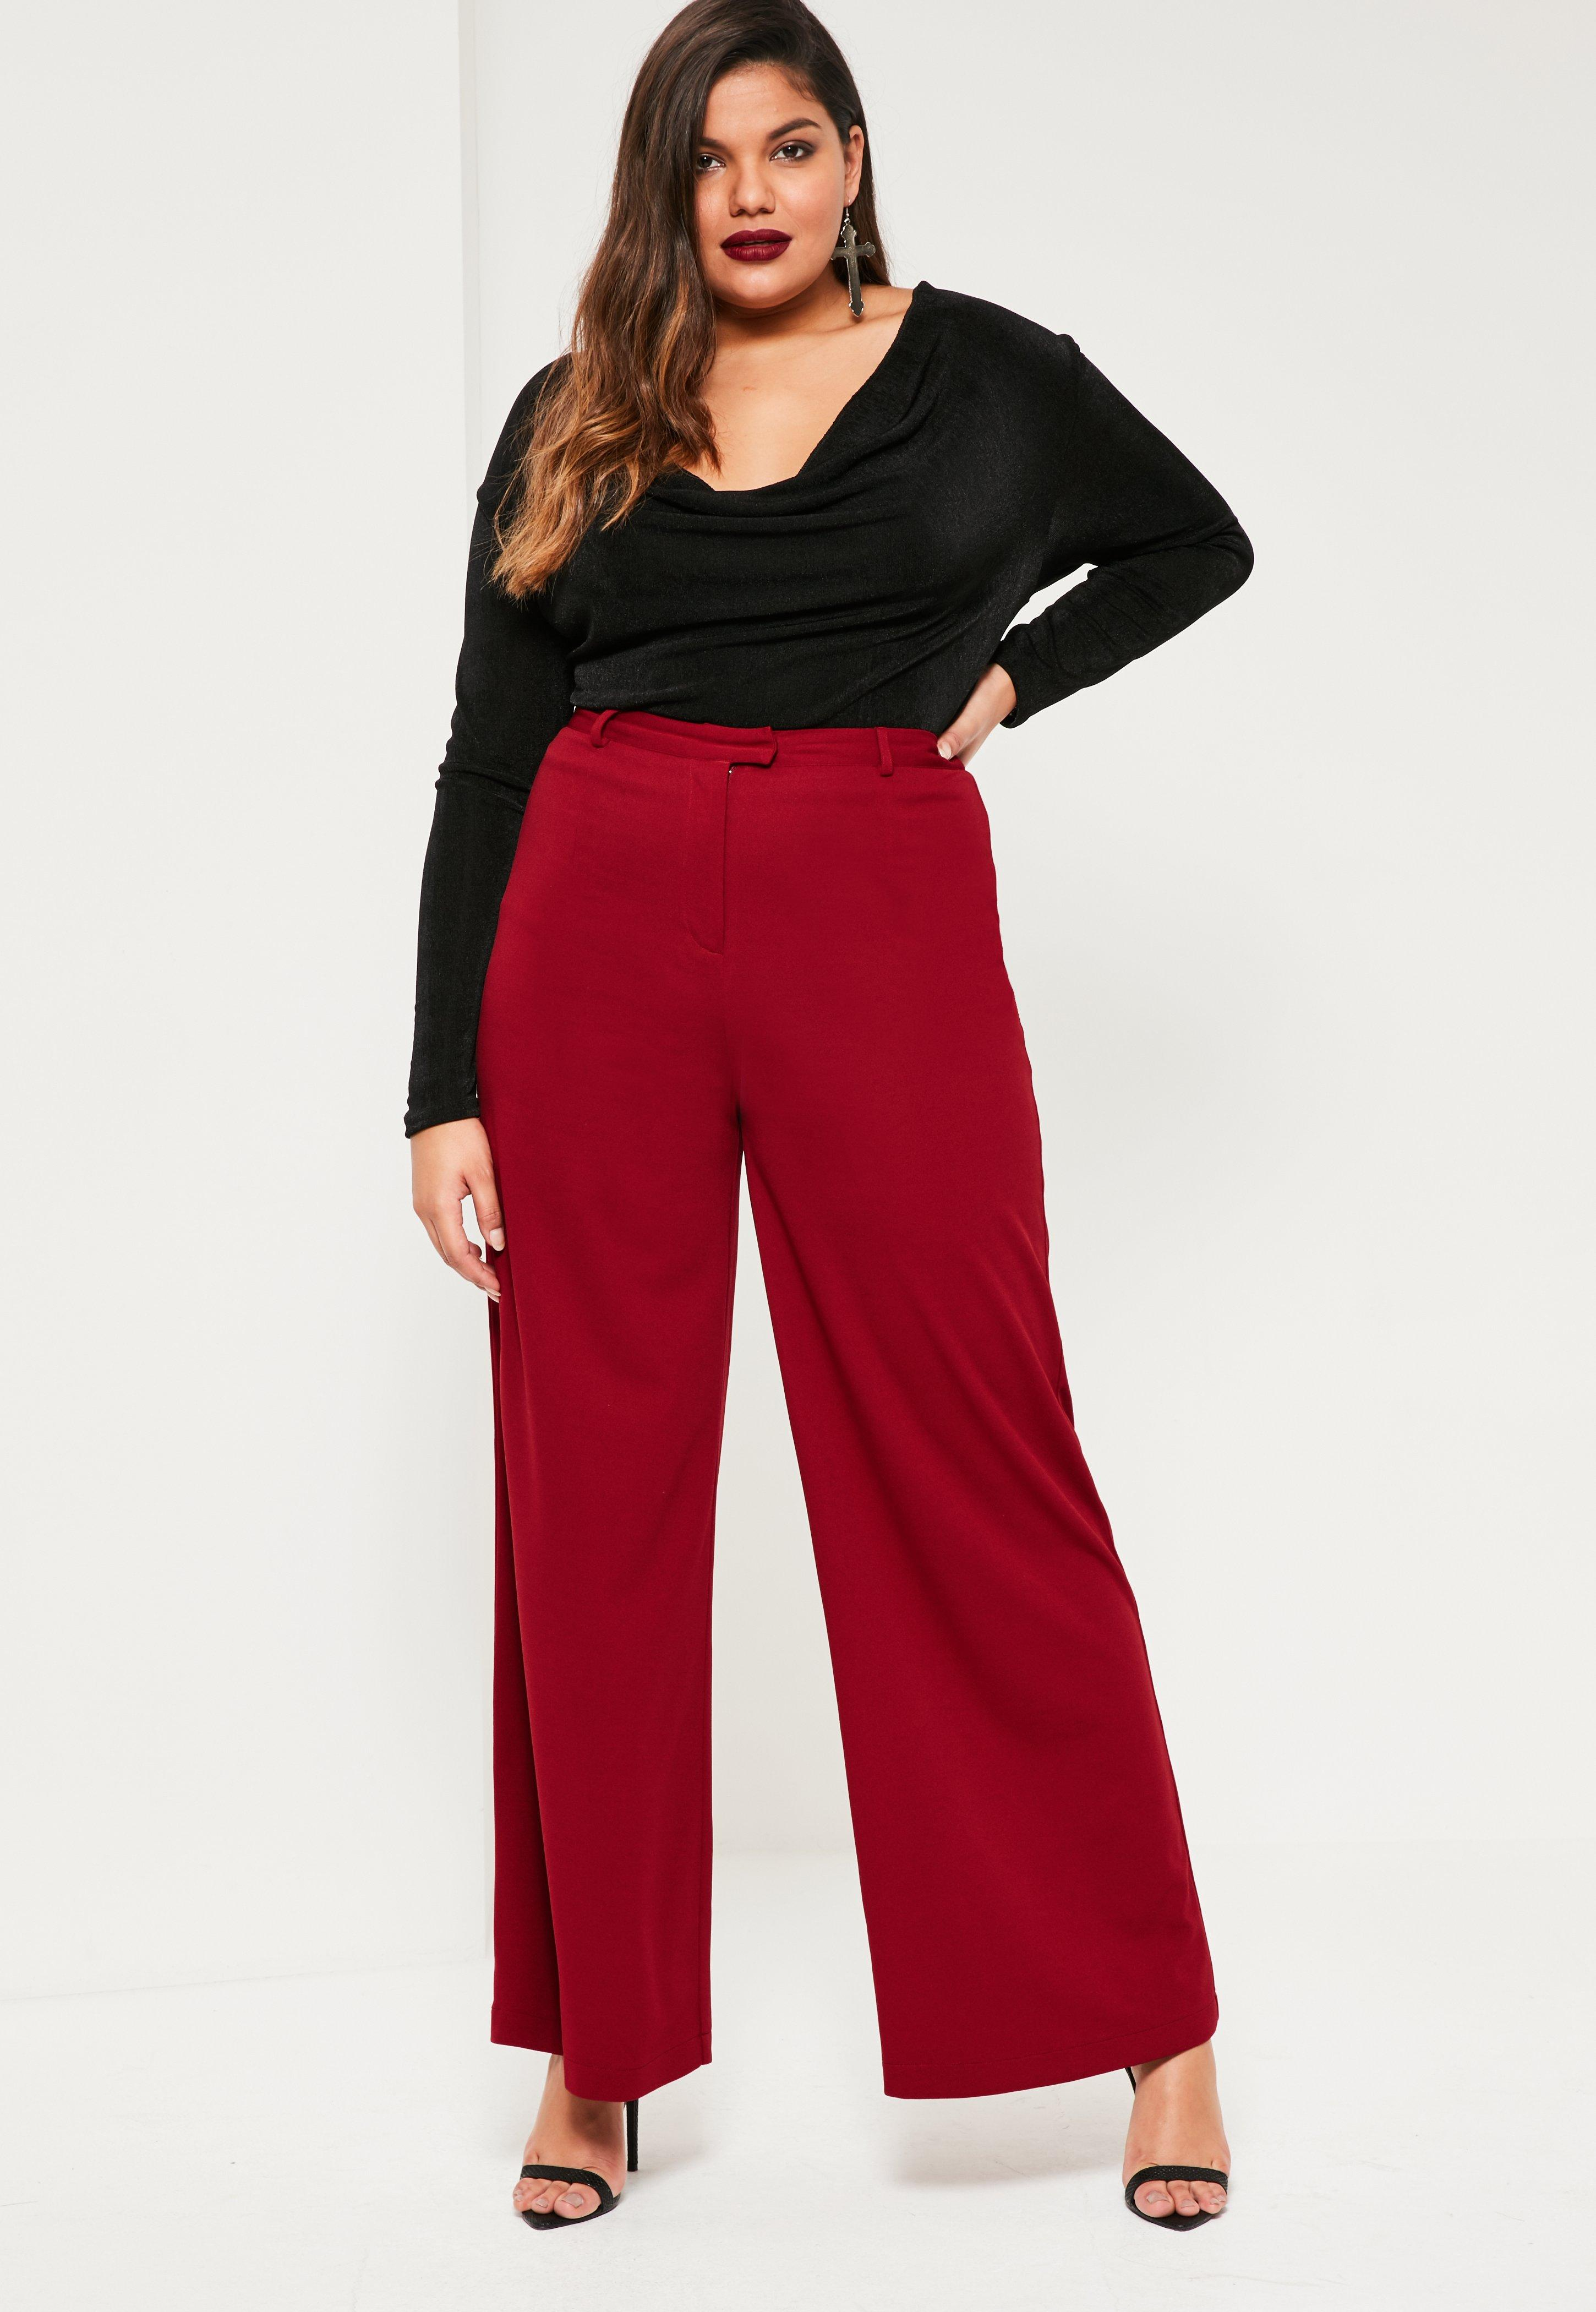 Plus Size Red Wide Leg Pants - Missguided